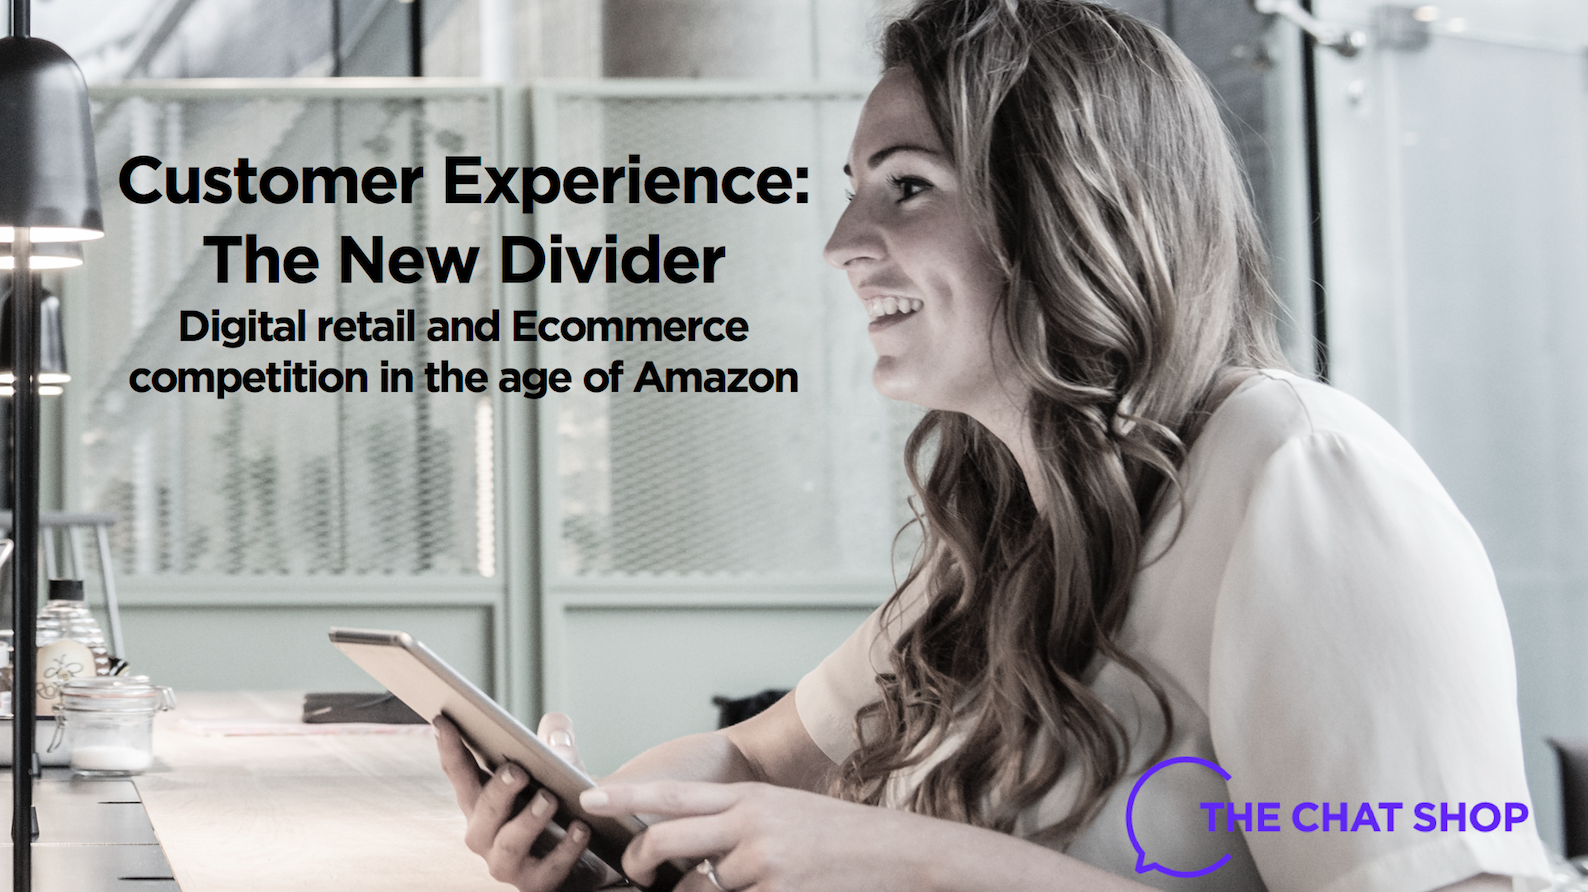 Customer Experience: The New Divider